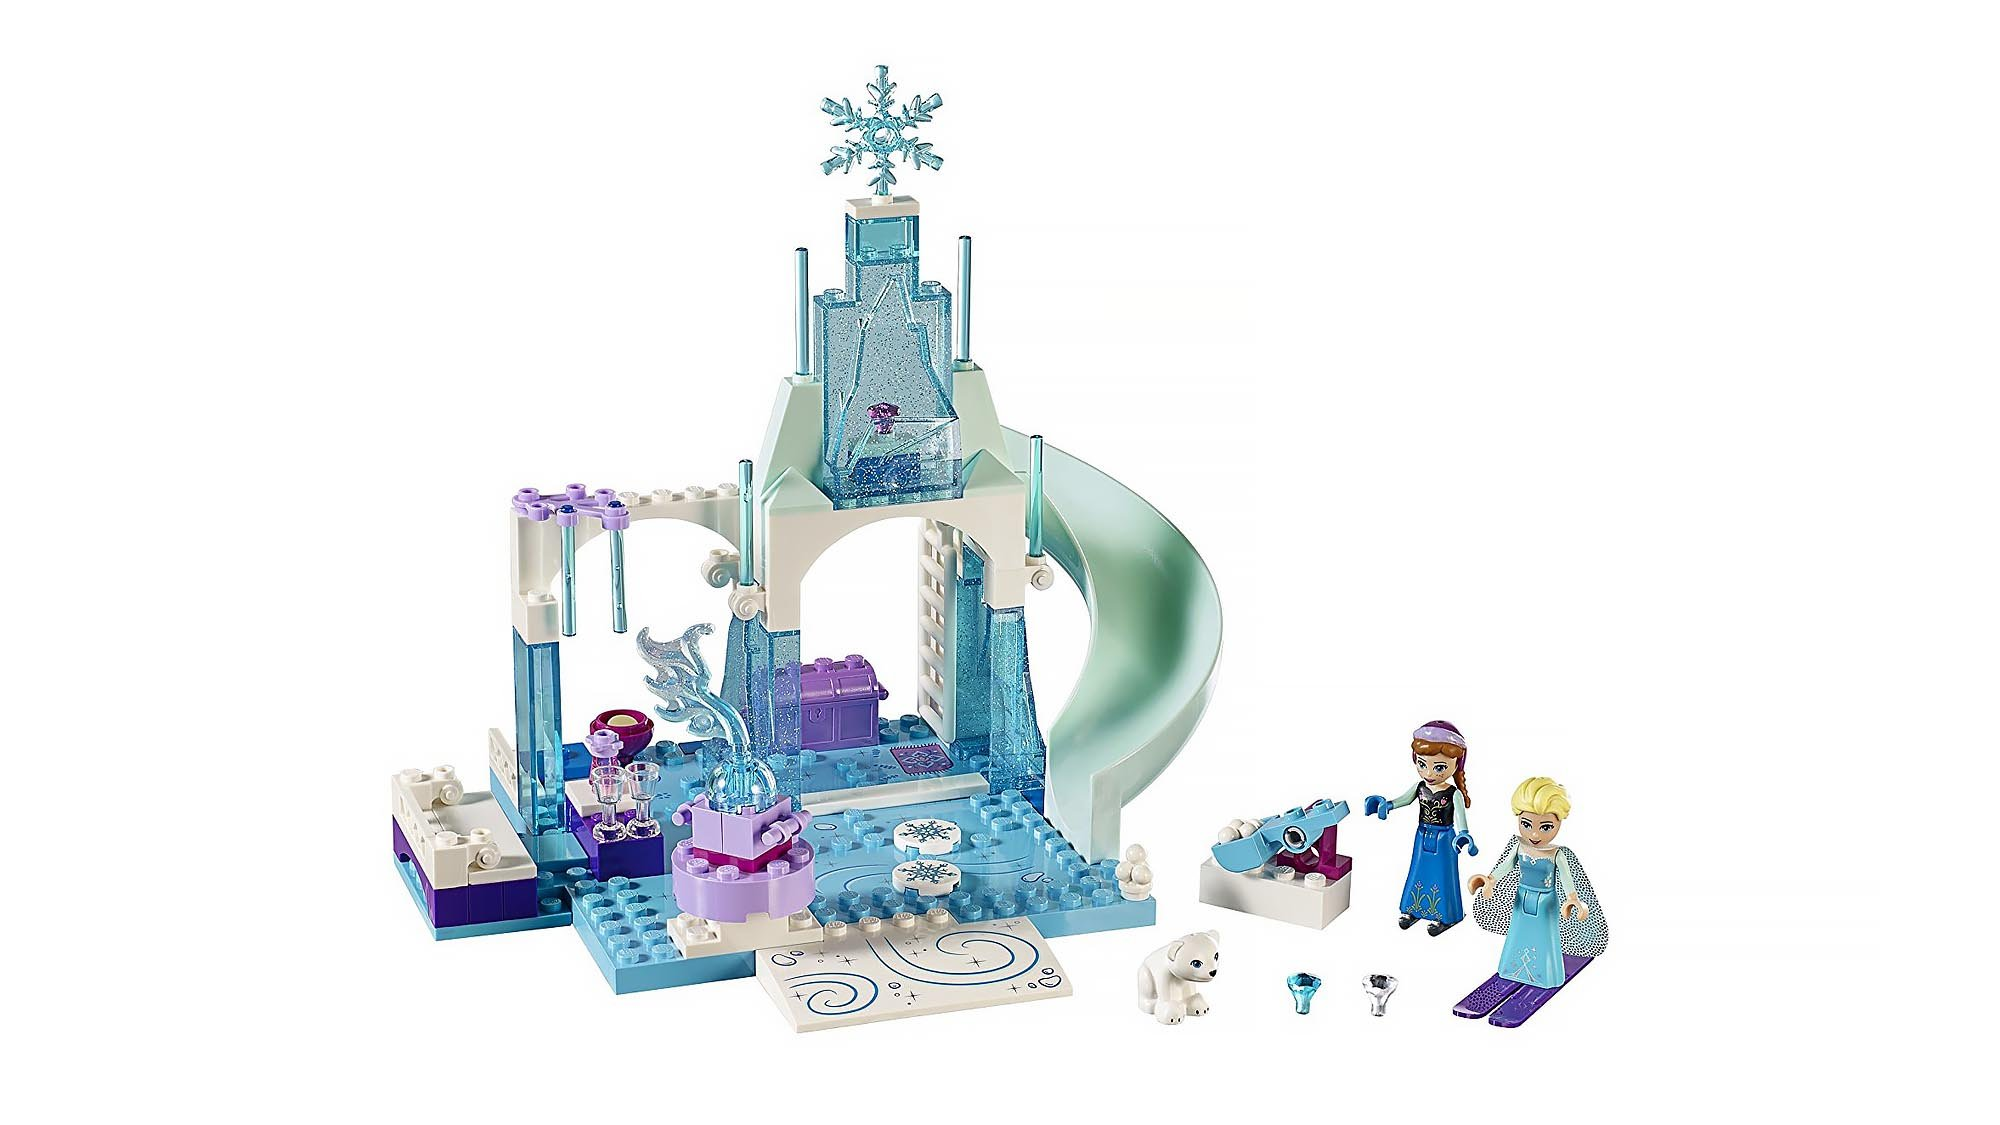 2f3b144da Disney's smash hit is still popular in school playgrounds up and down the  country, despite releasing back in 2013. If your kids are craving Lego's  take on ...